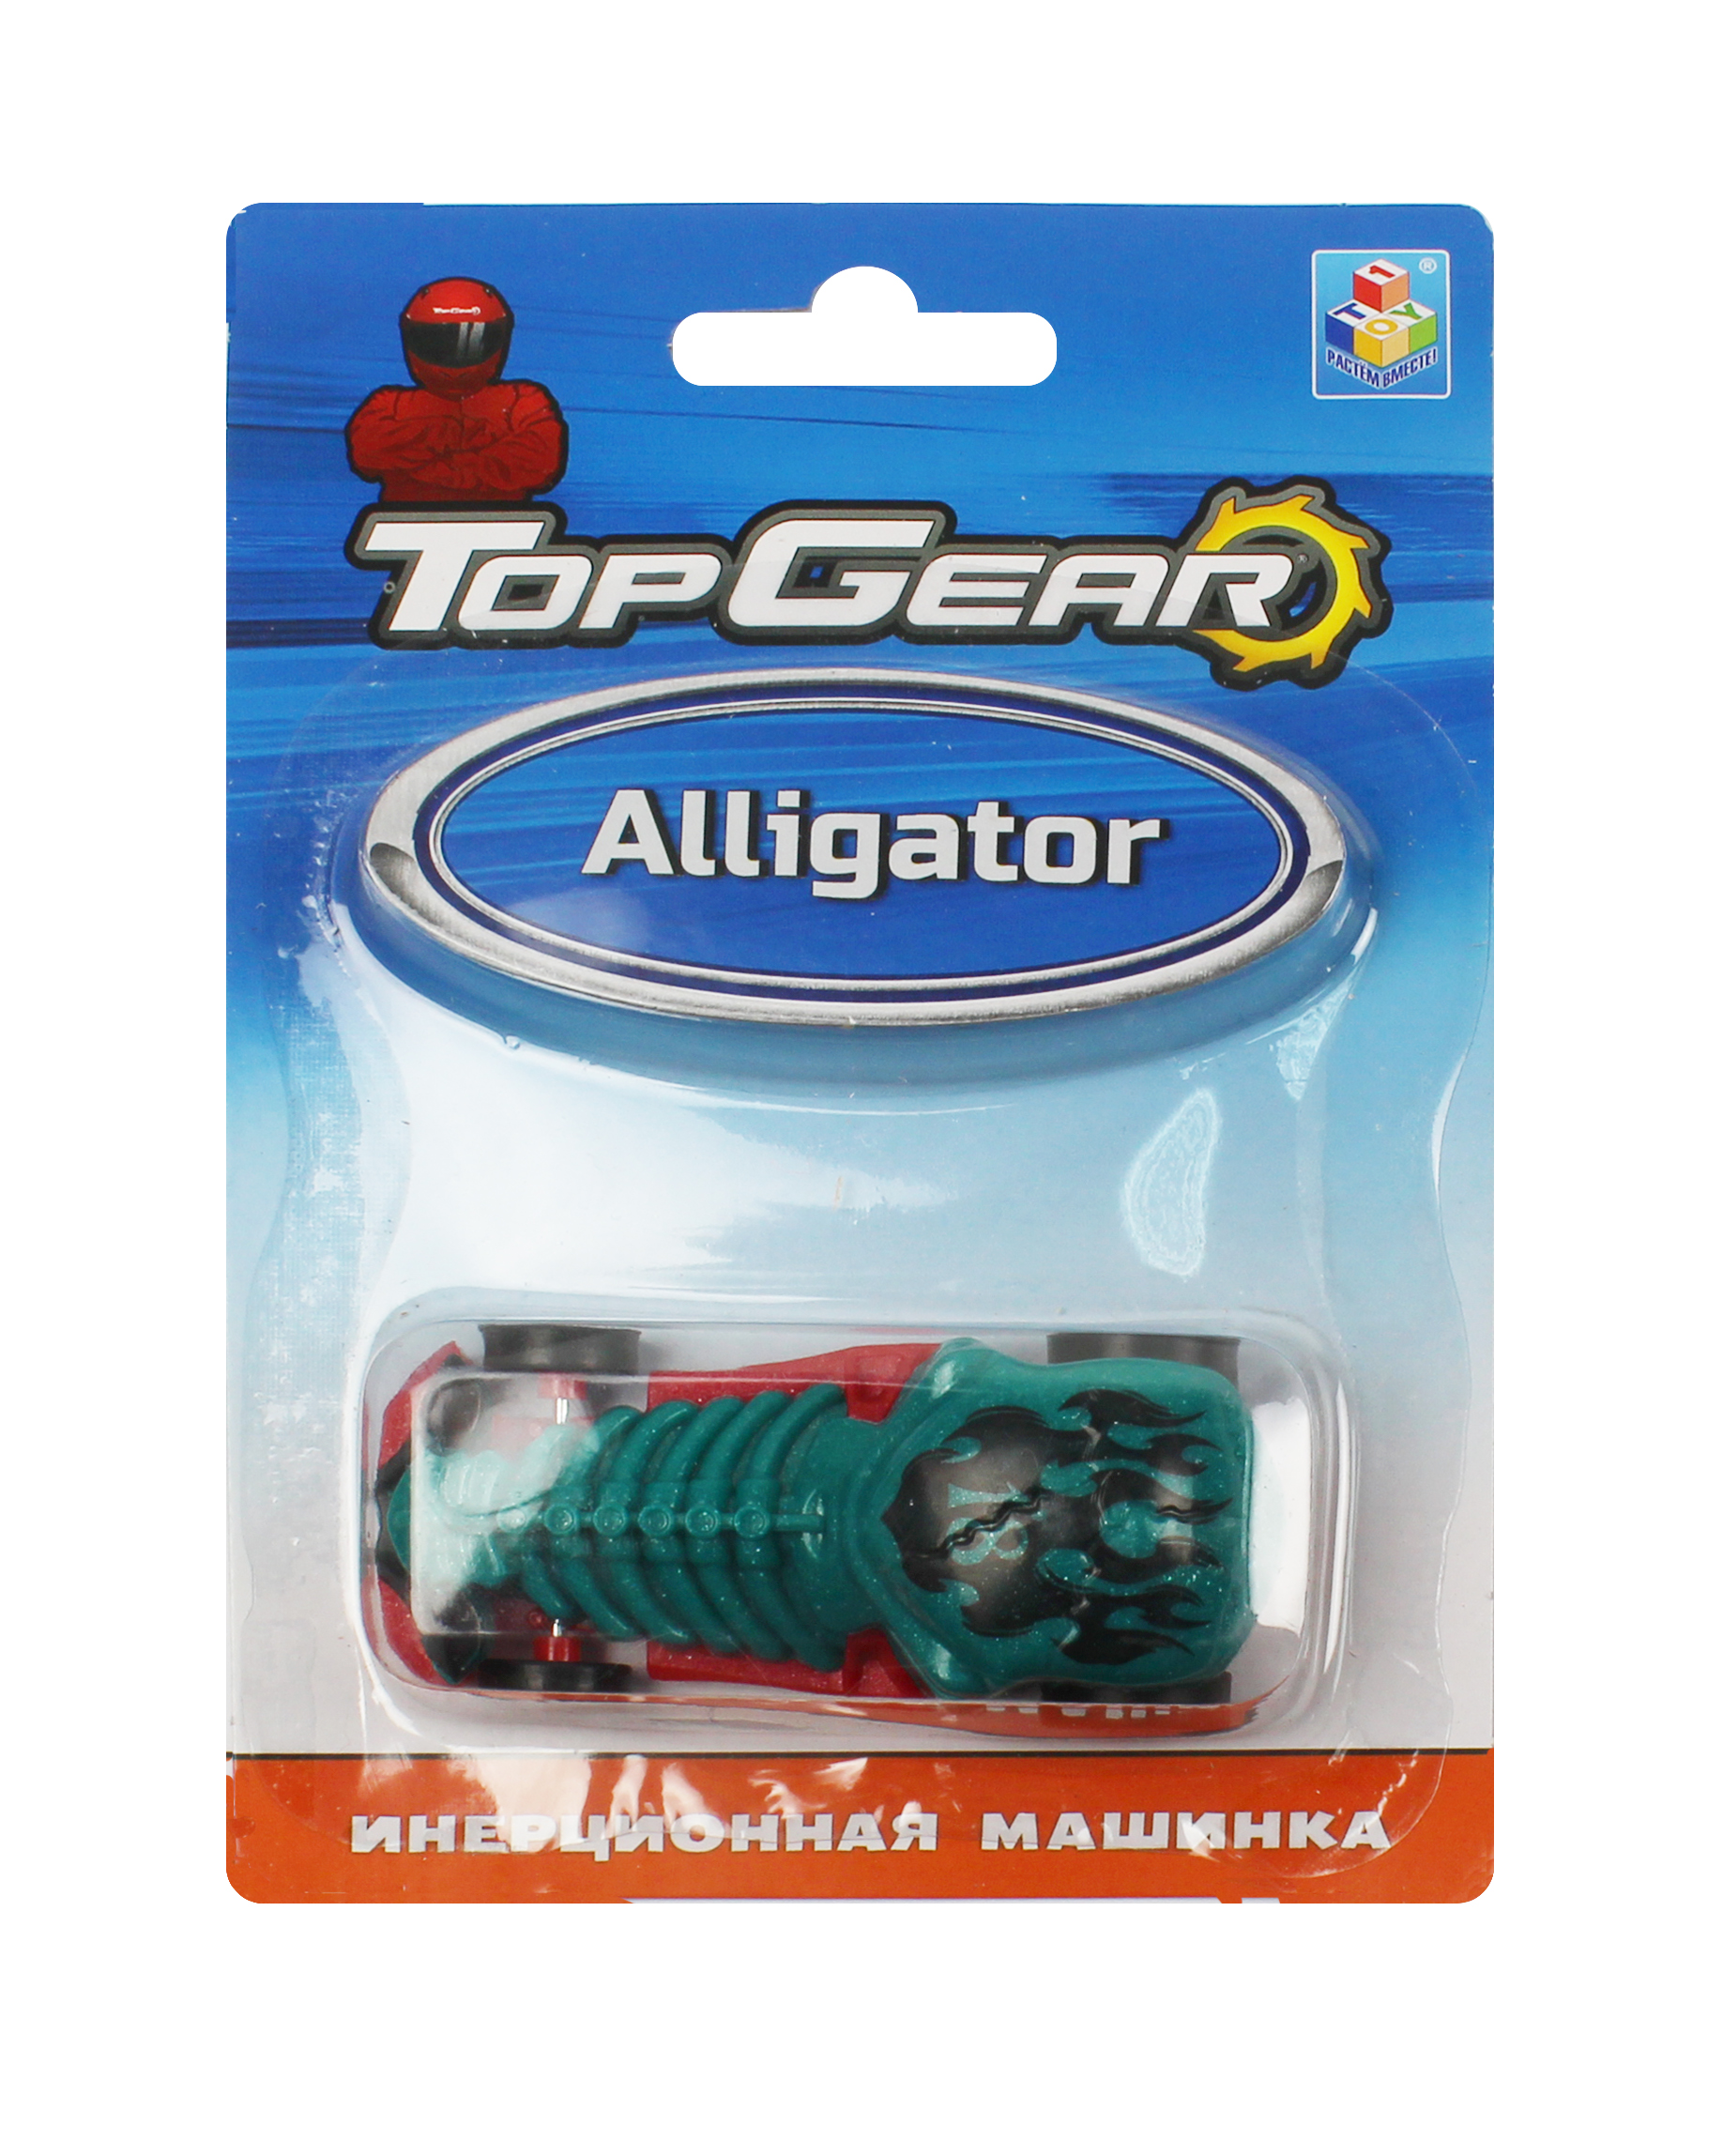 Машинка 1toy Top Gear- Alligator Т10332 машинки и мотоциклы 1toy top gear road runner т10327